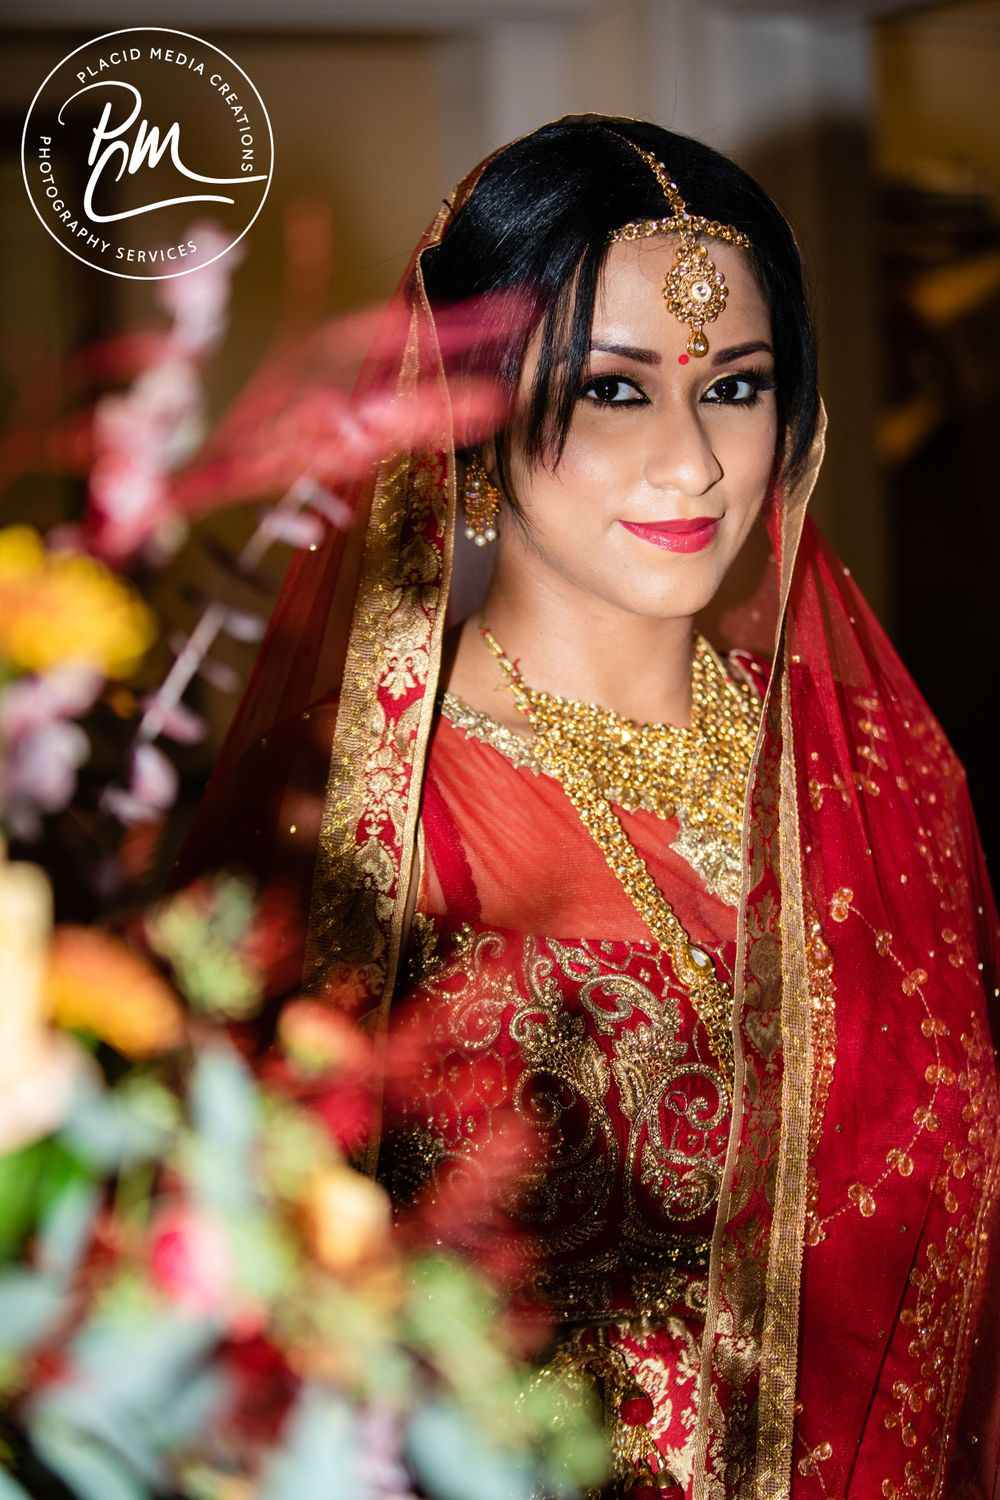 Bride wears colorful lehengas are embroidered with intricate gold designs